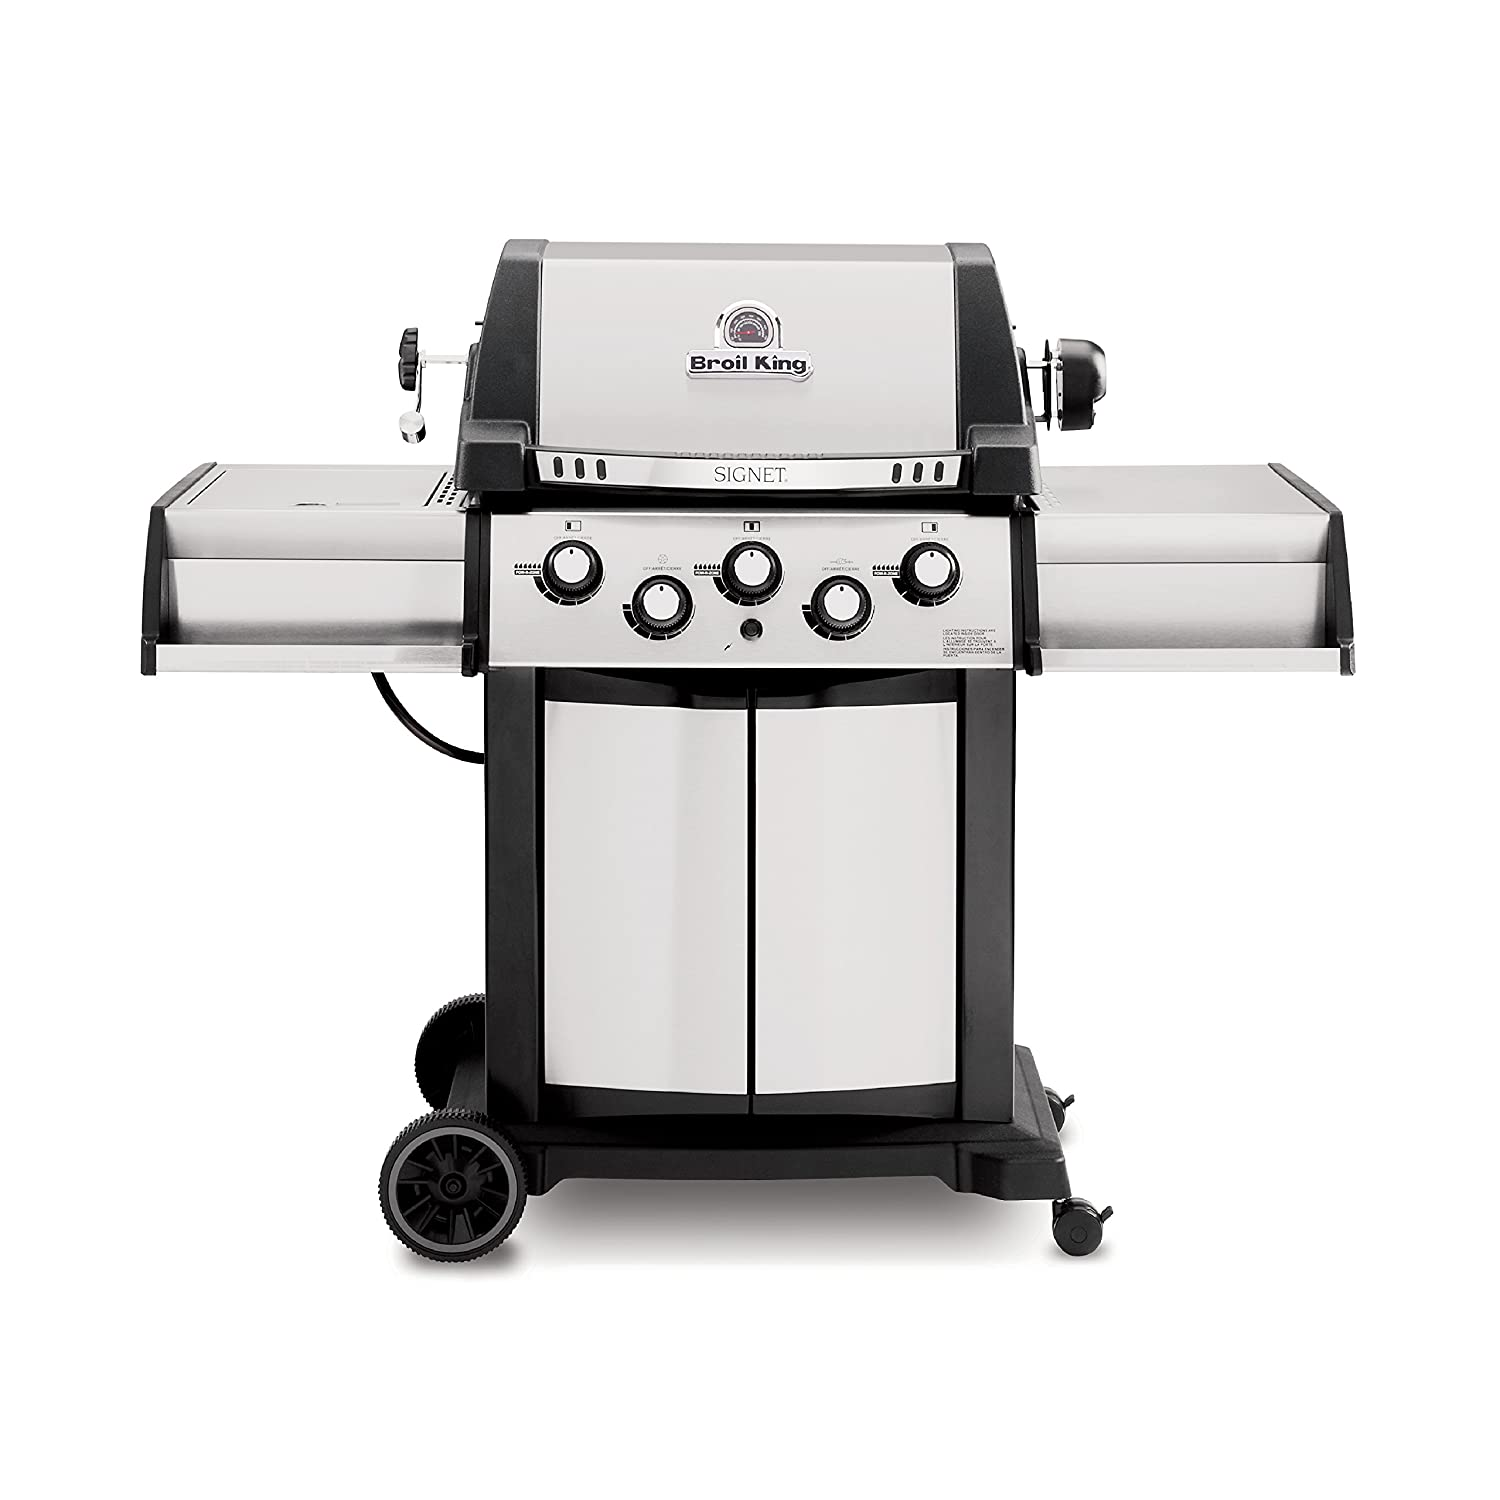 Broil King 986887 Signet 90 Natural Gas Grill with Side Burner and Rear Rotisserie